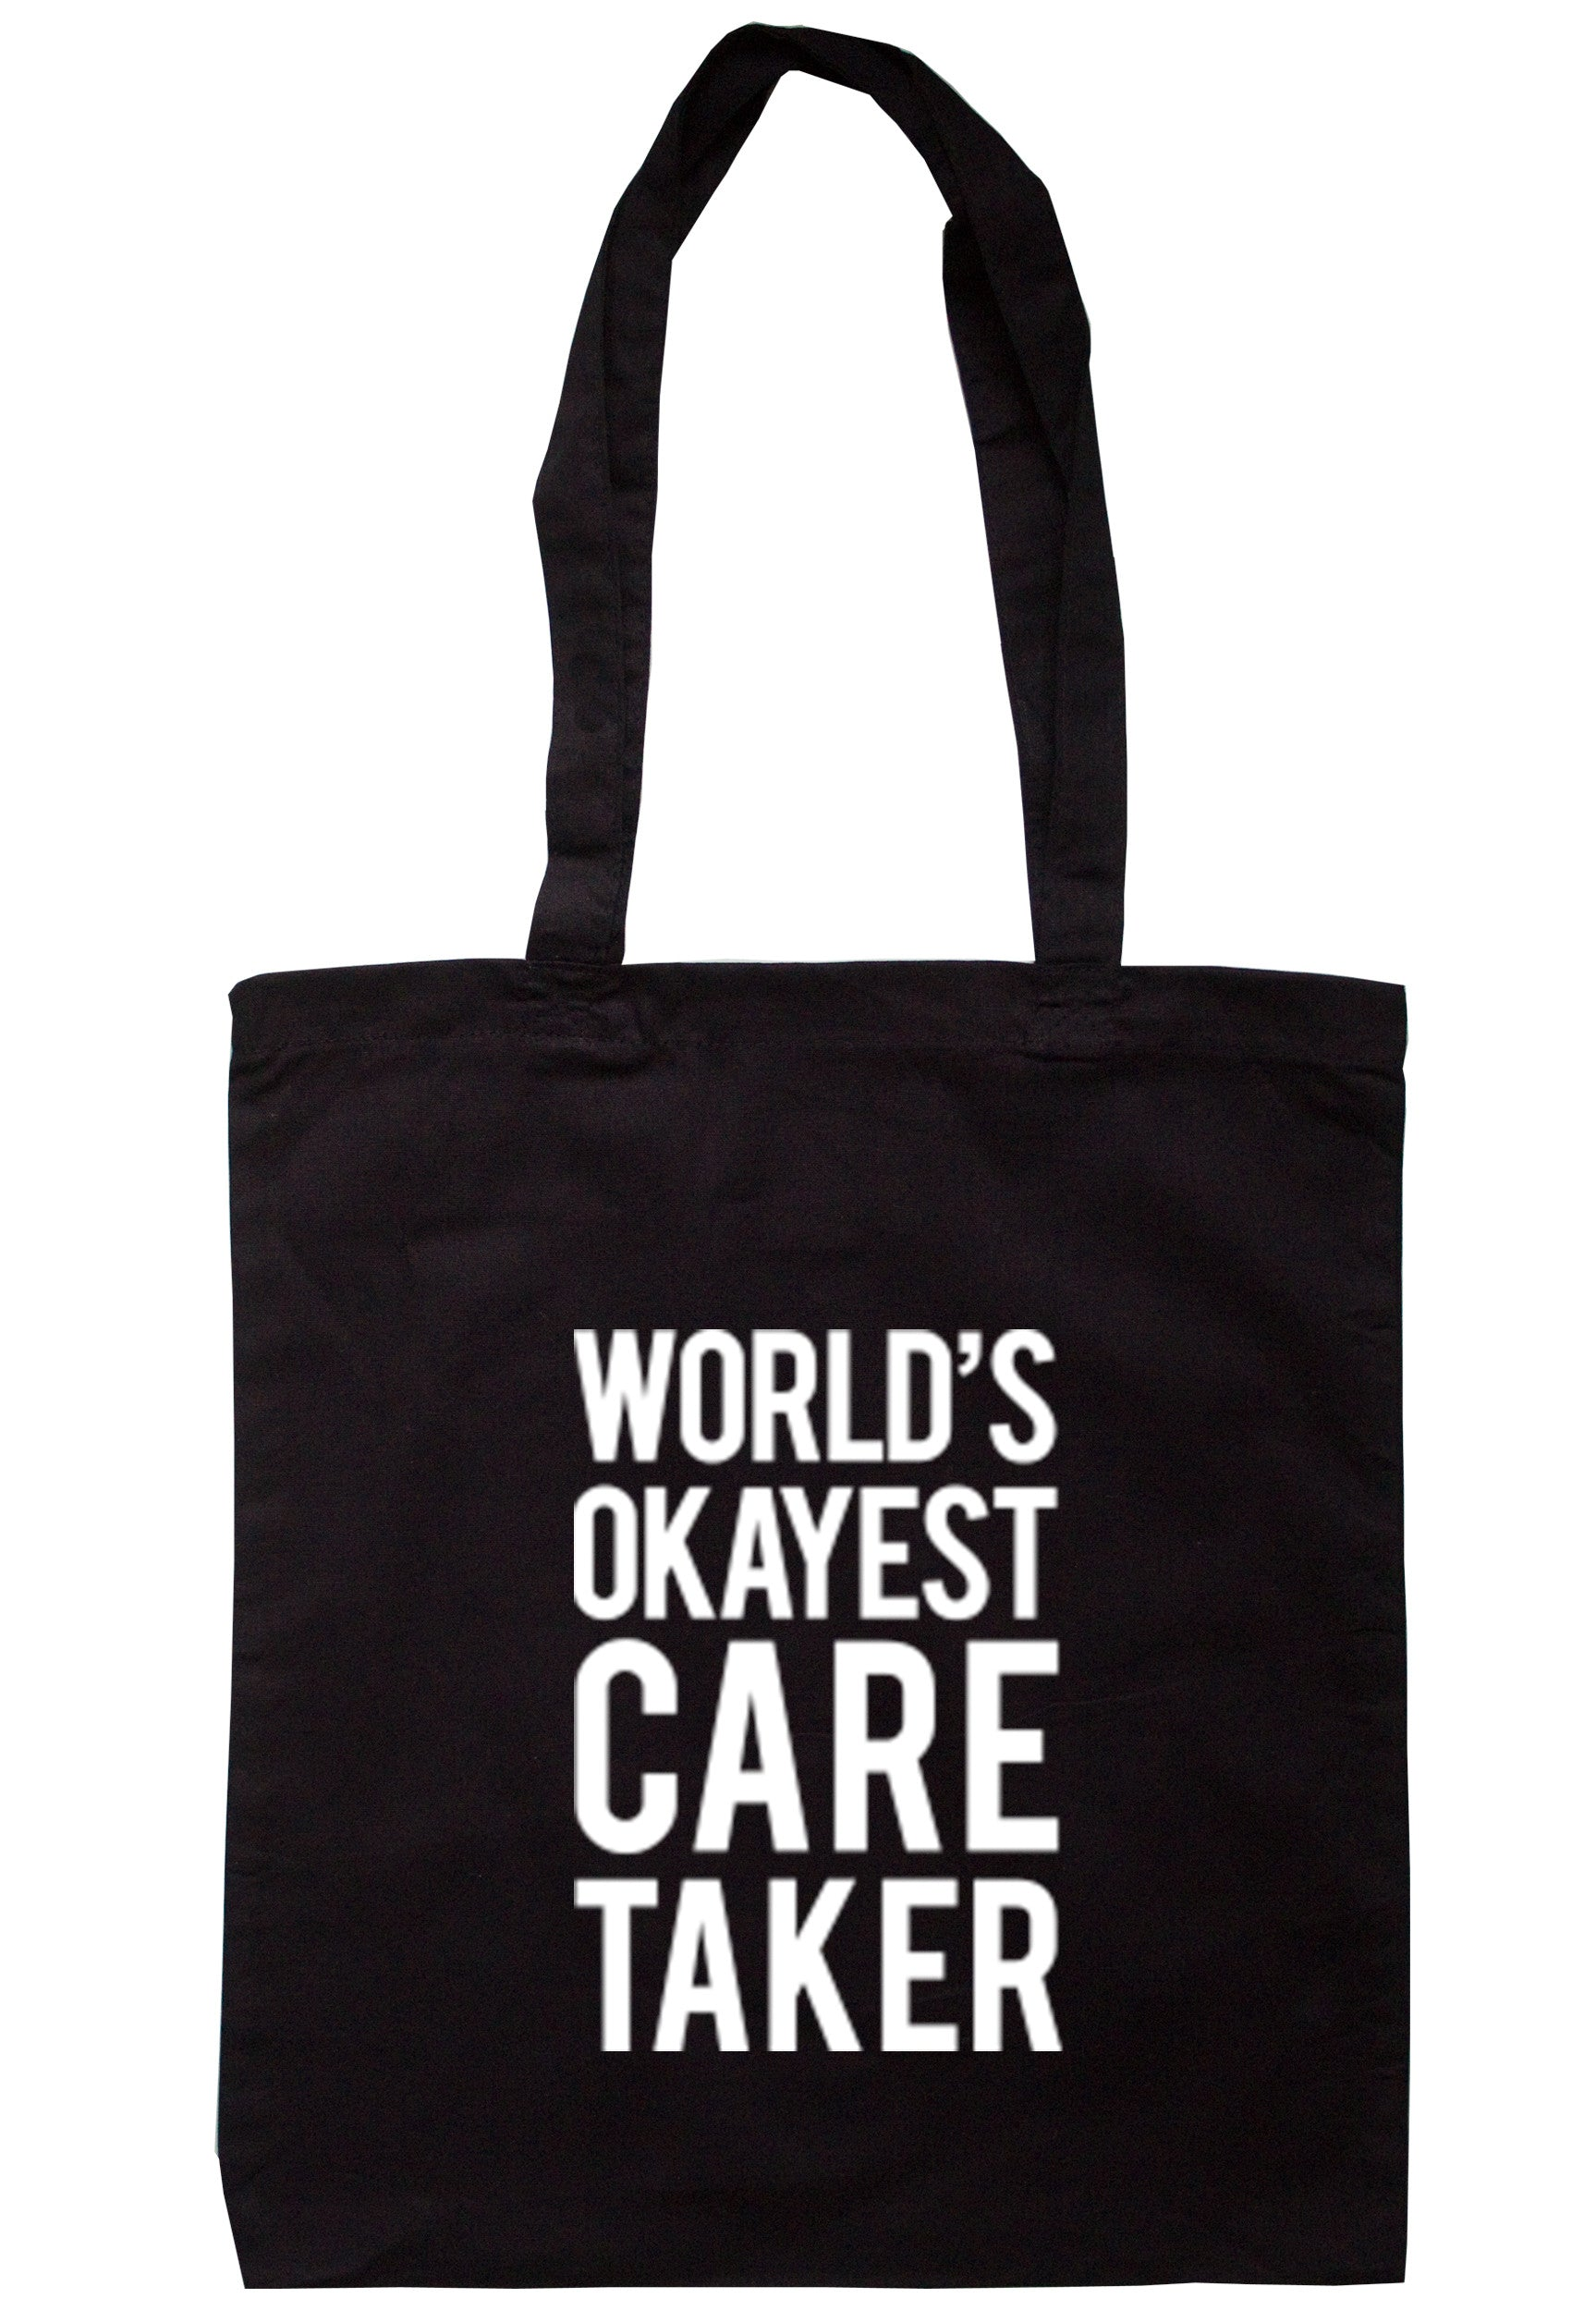 Worlds Okayest Care Taker Tote Bag TB0293 - Illustrated Identity Ltd.